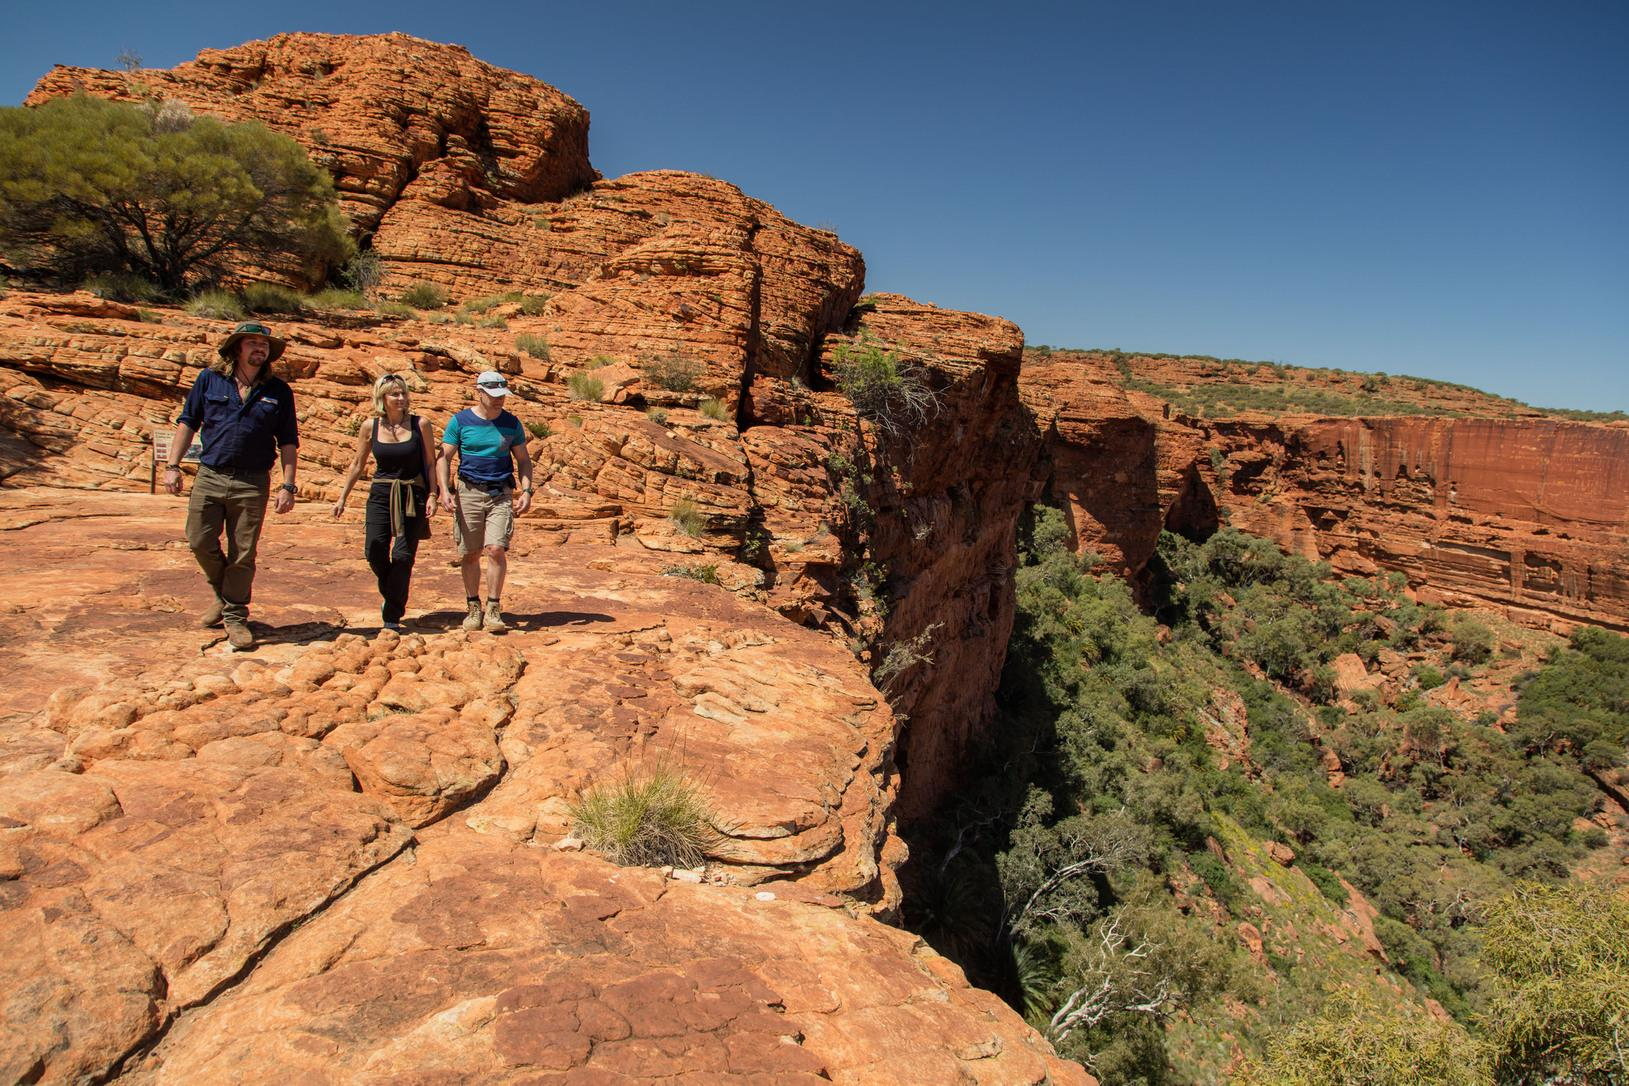 Explore the most Iconic Sights in the Red Centre with this 7 Day Package